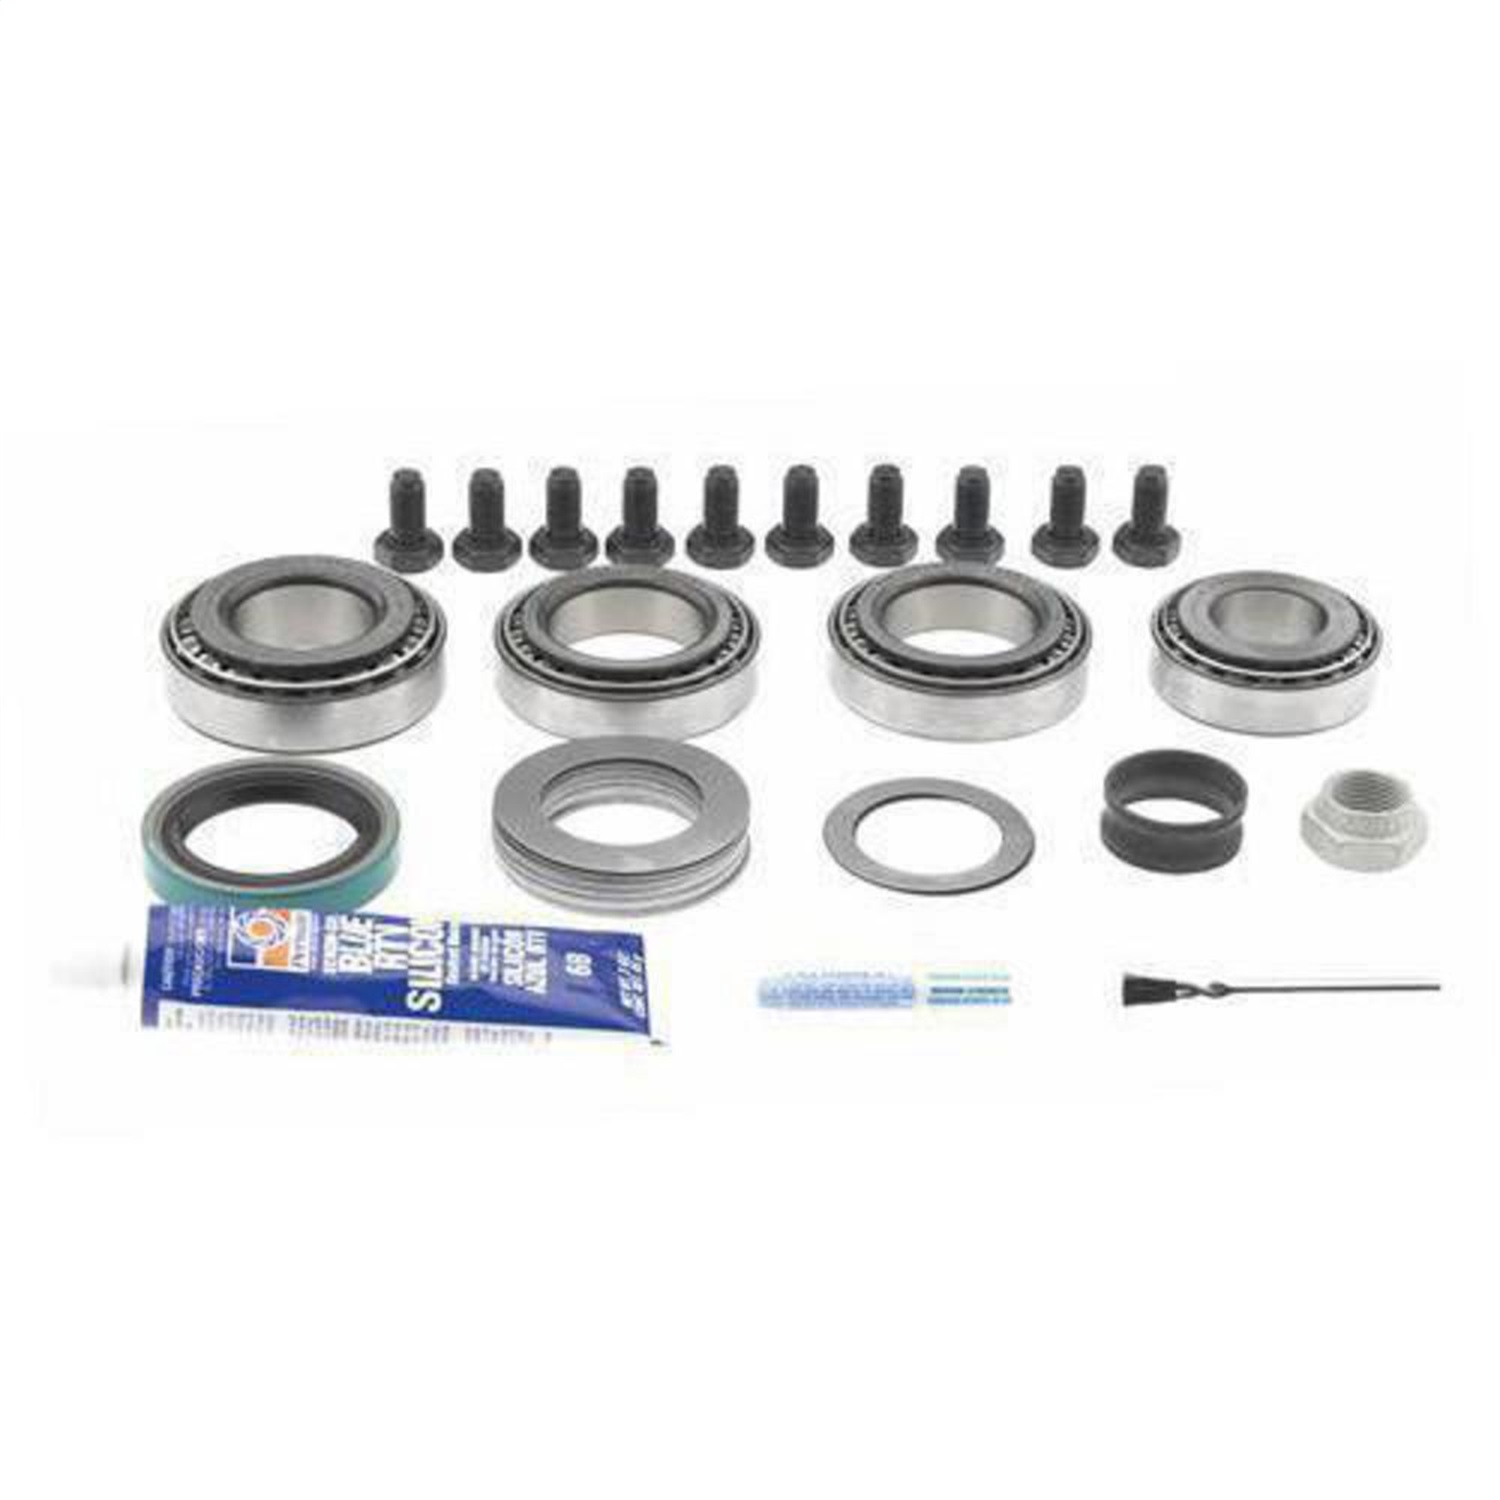 G2 Axle and Gear 35-2044 Ring And Pinion Master Install Kit Fits Land Cruiser